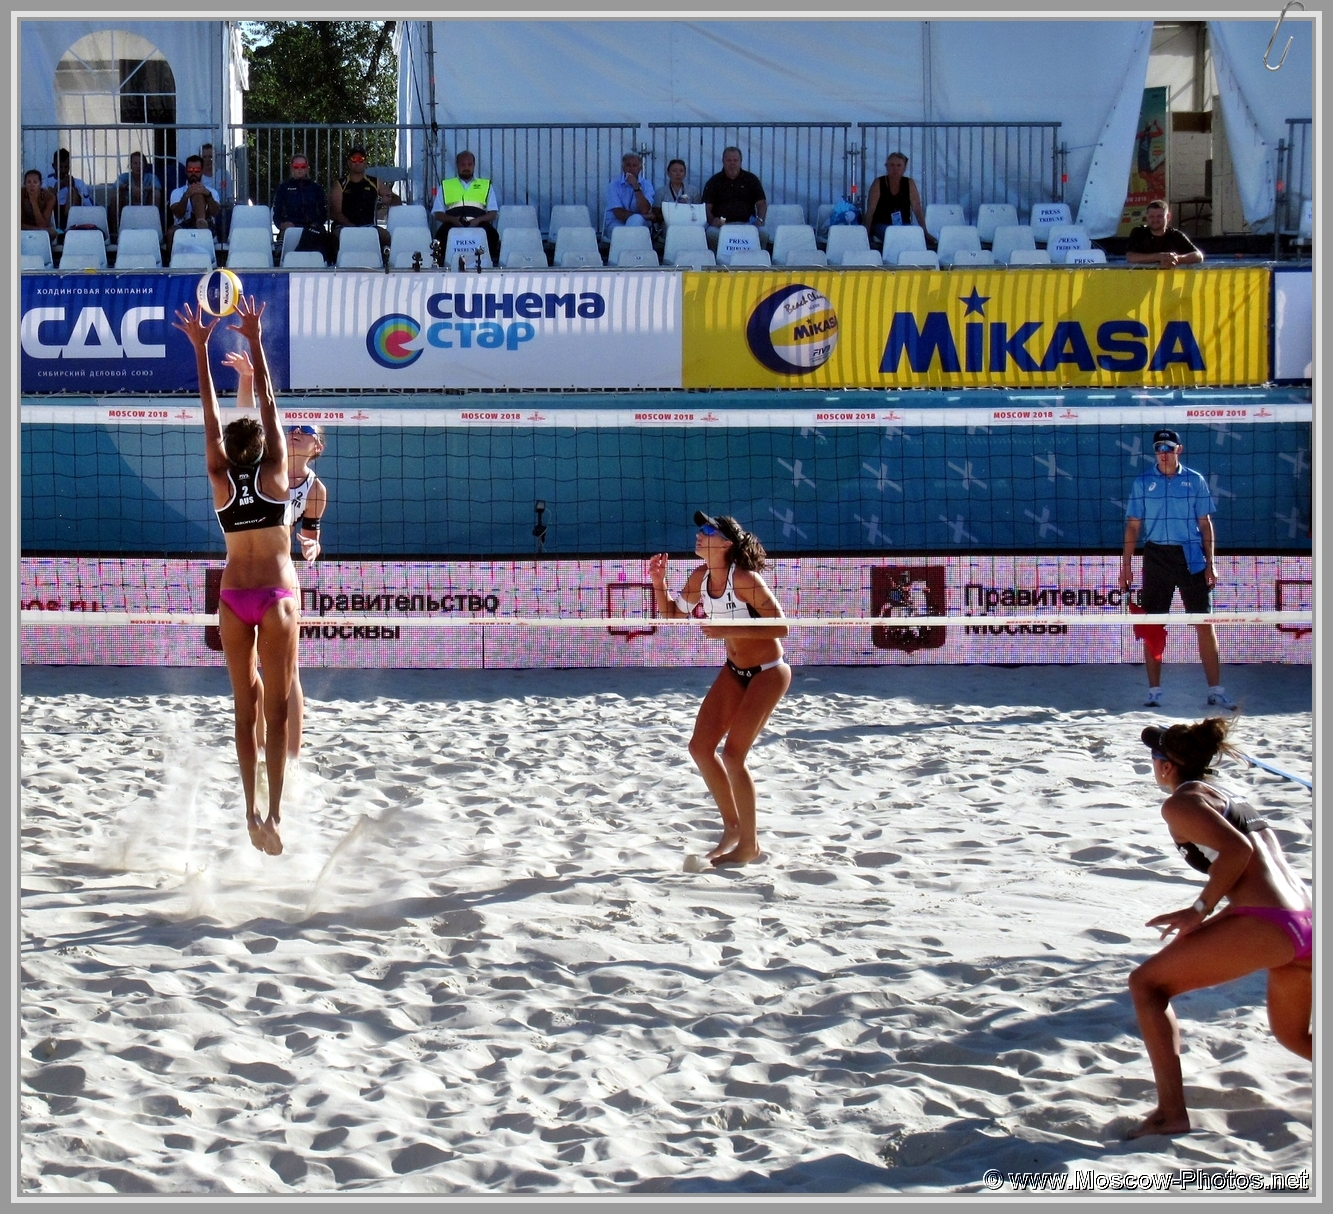 Taliqua Clancy and Mariafe Artacho del Solar - Australian Team at FIVB Beach Volleyball World Tour in Moscow